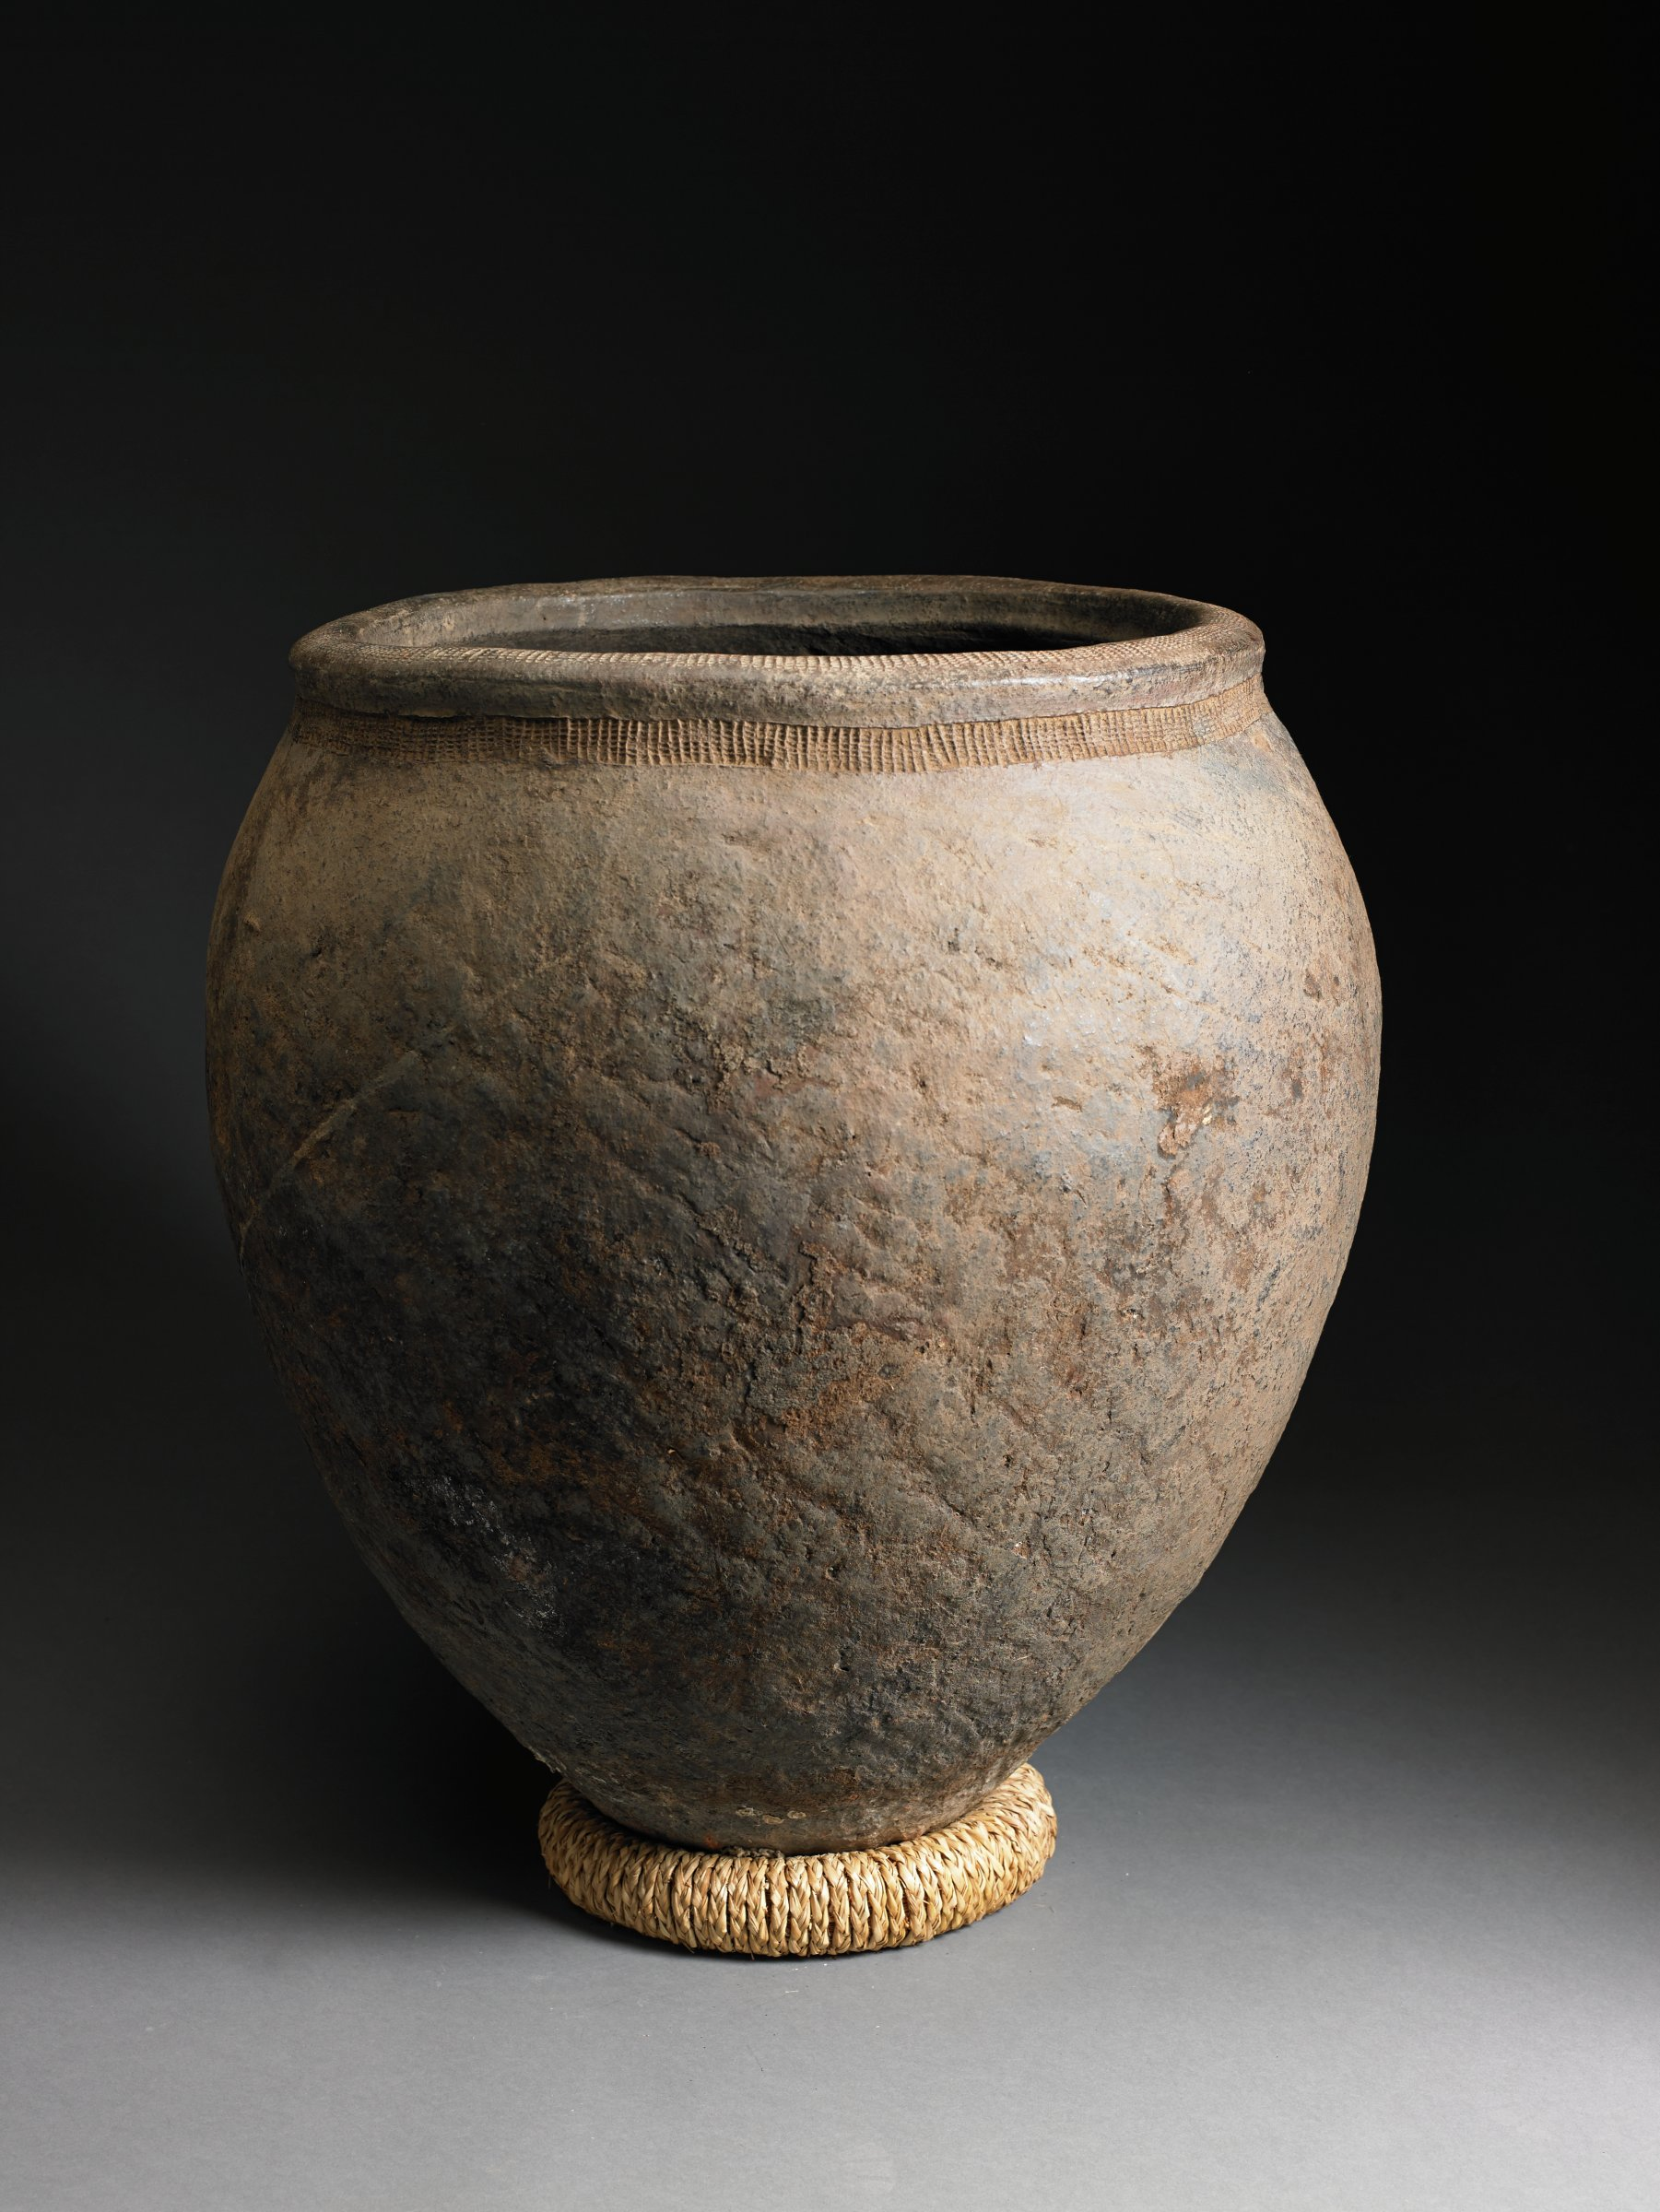 Ovoid brown jar with wide mouth and short flared lip tapers to narrow bottom. Jar has variegated color and overall surface texture with narrow checkerboard band just under lip.